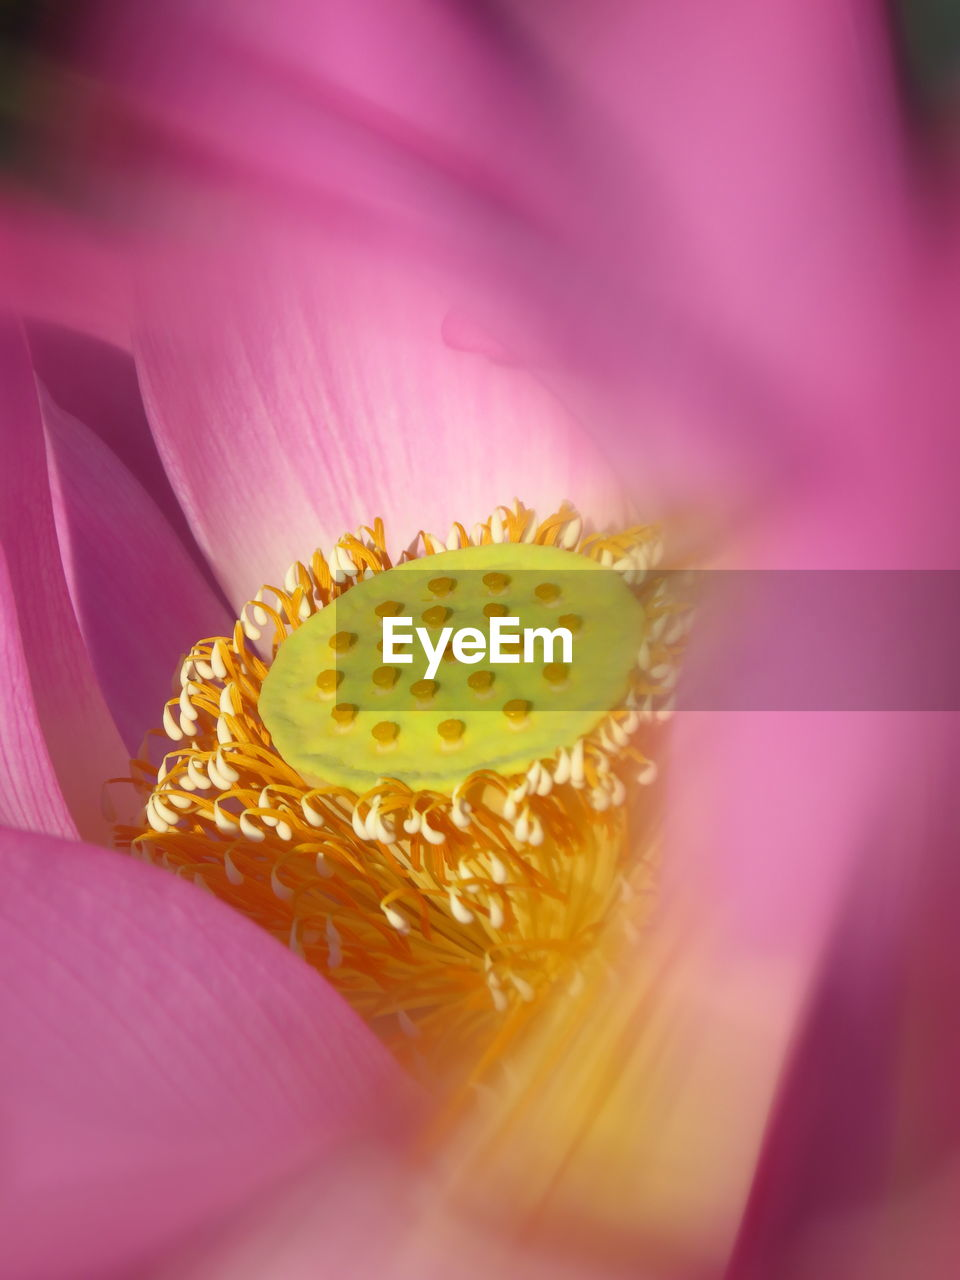 freshness, pollen, close-up, flower, selective focus, petal, flowering plant, inflorescence, beauty in nature, plant, flower head, no people, pink color, vulnerability, fragility, growth, yellow, stamen, nature, softness, lotus water lily